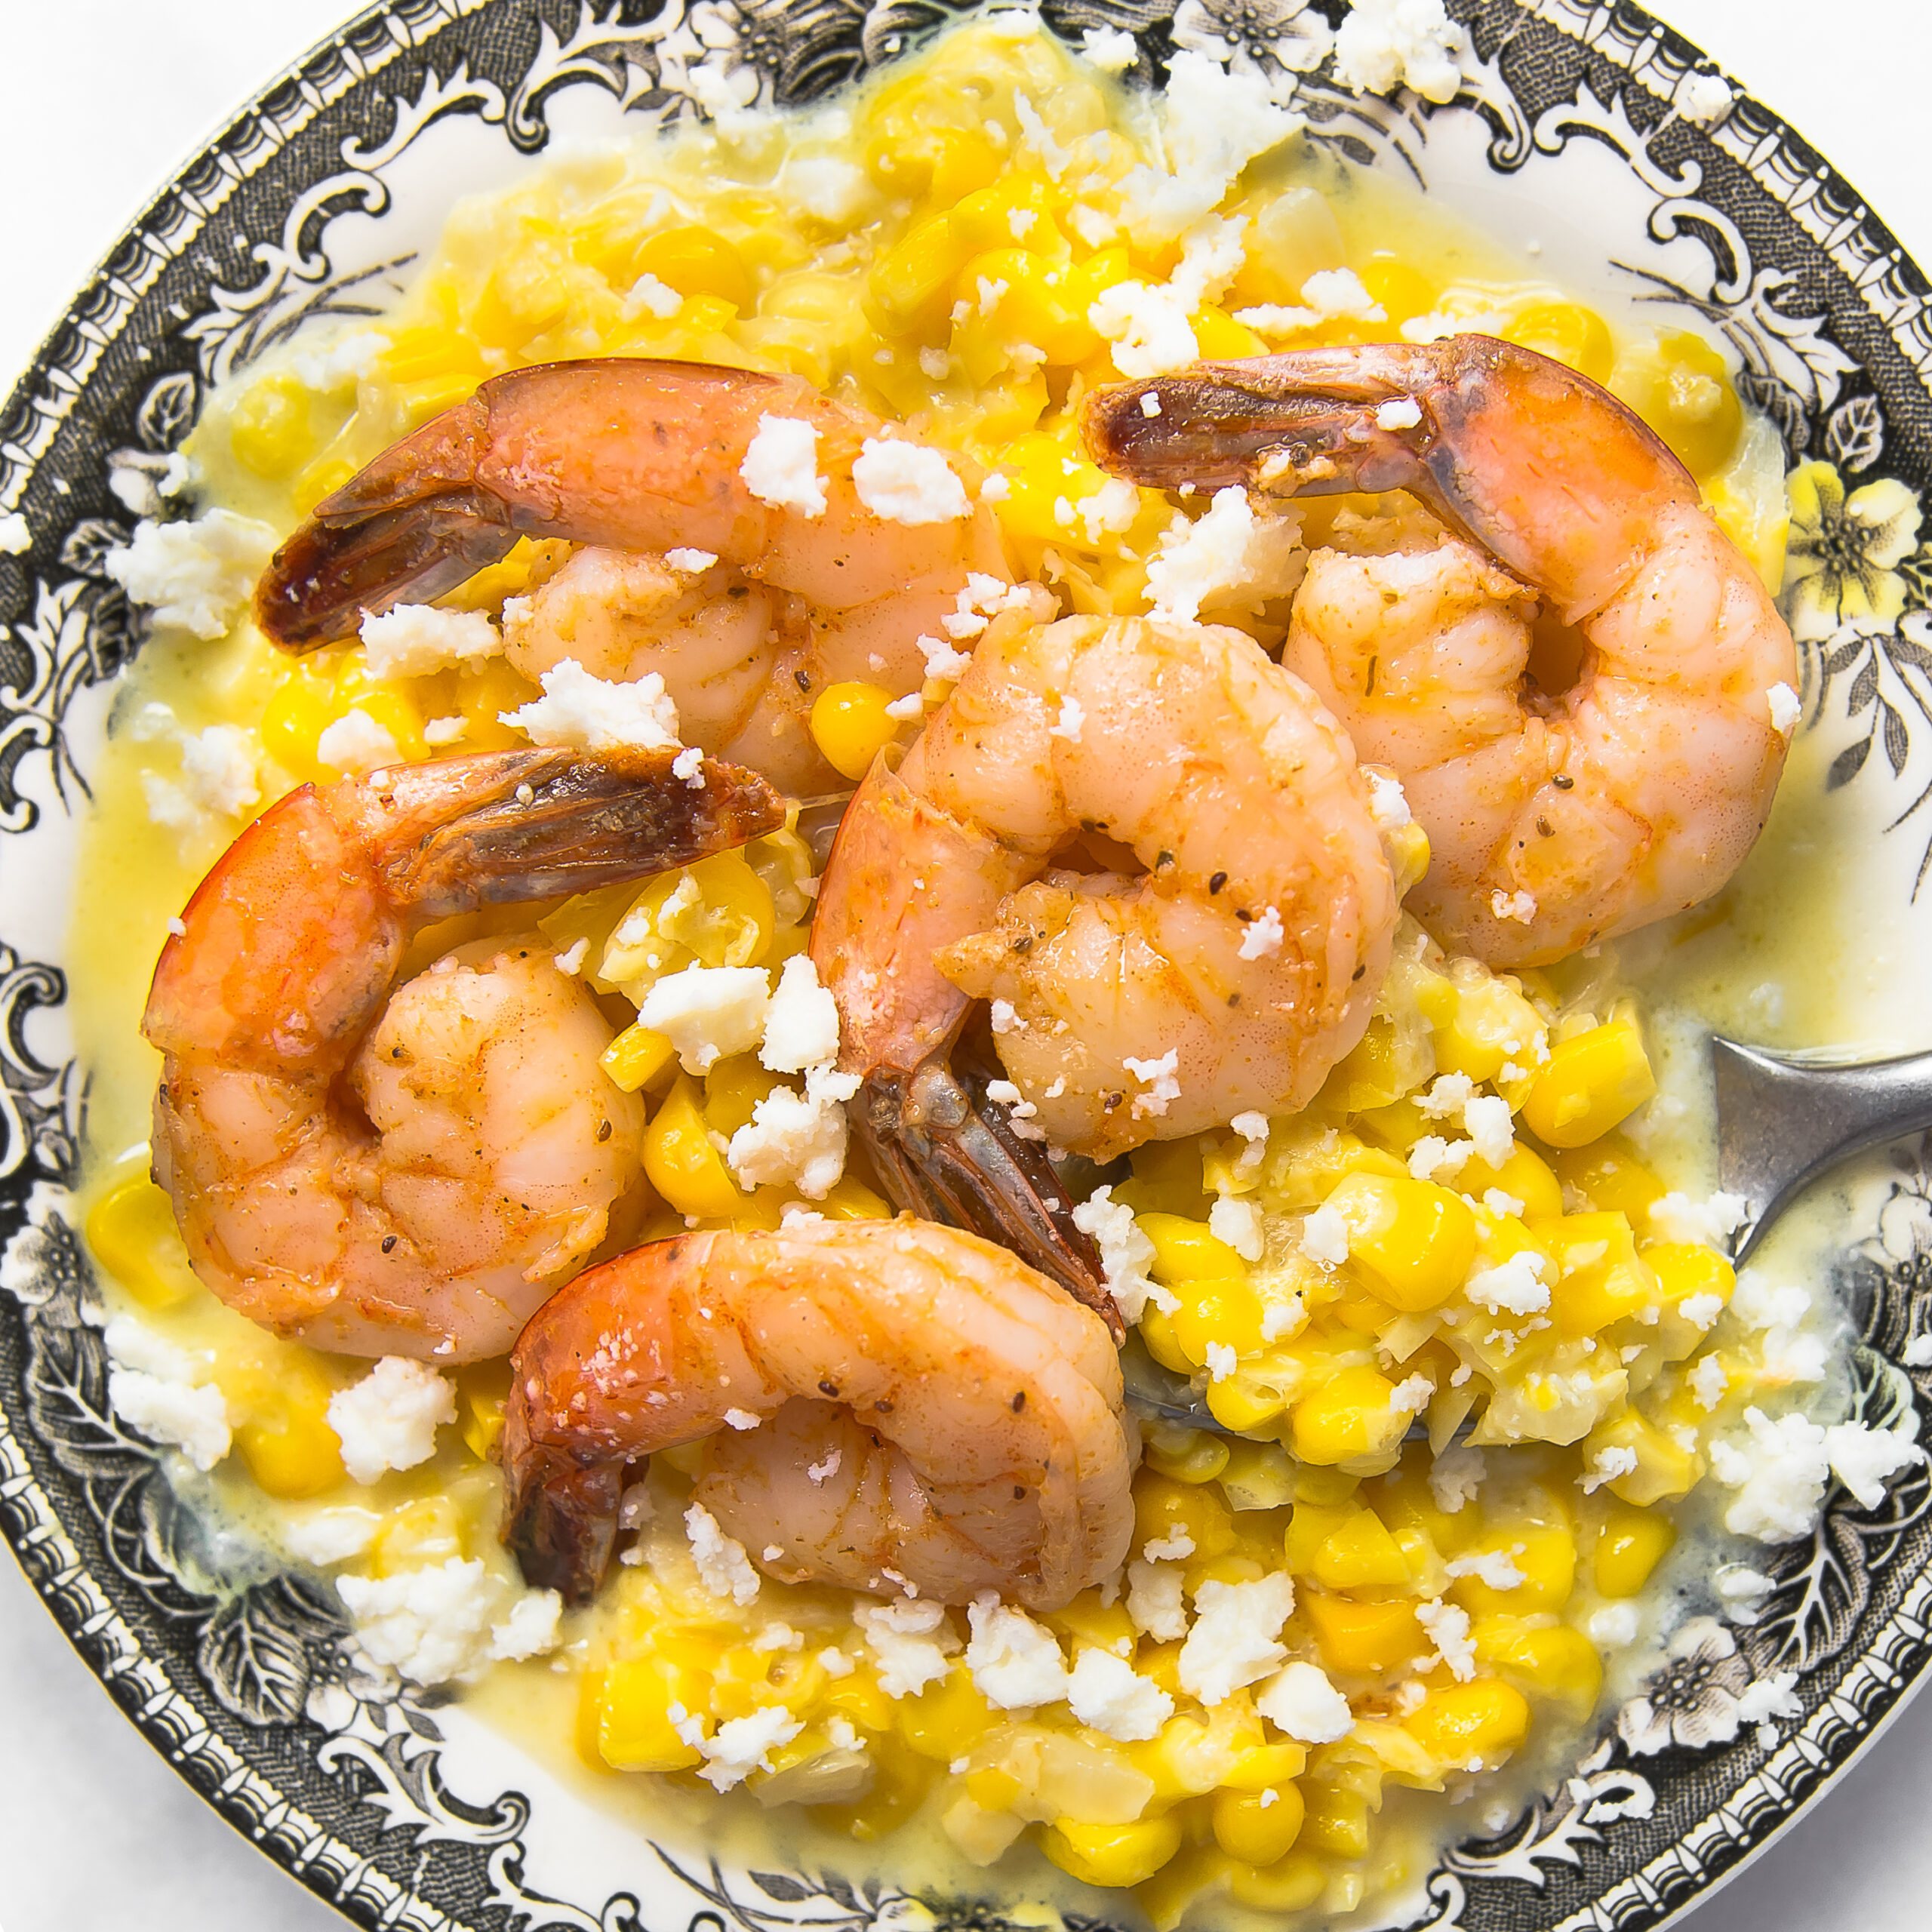 Creamed Corn with Old Bay Shrimp 1 (1 of 1)